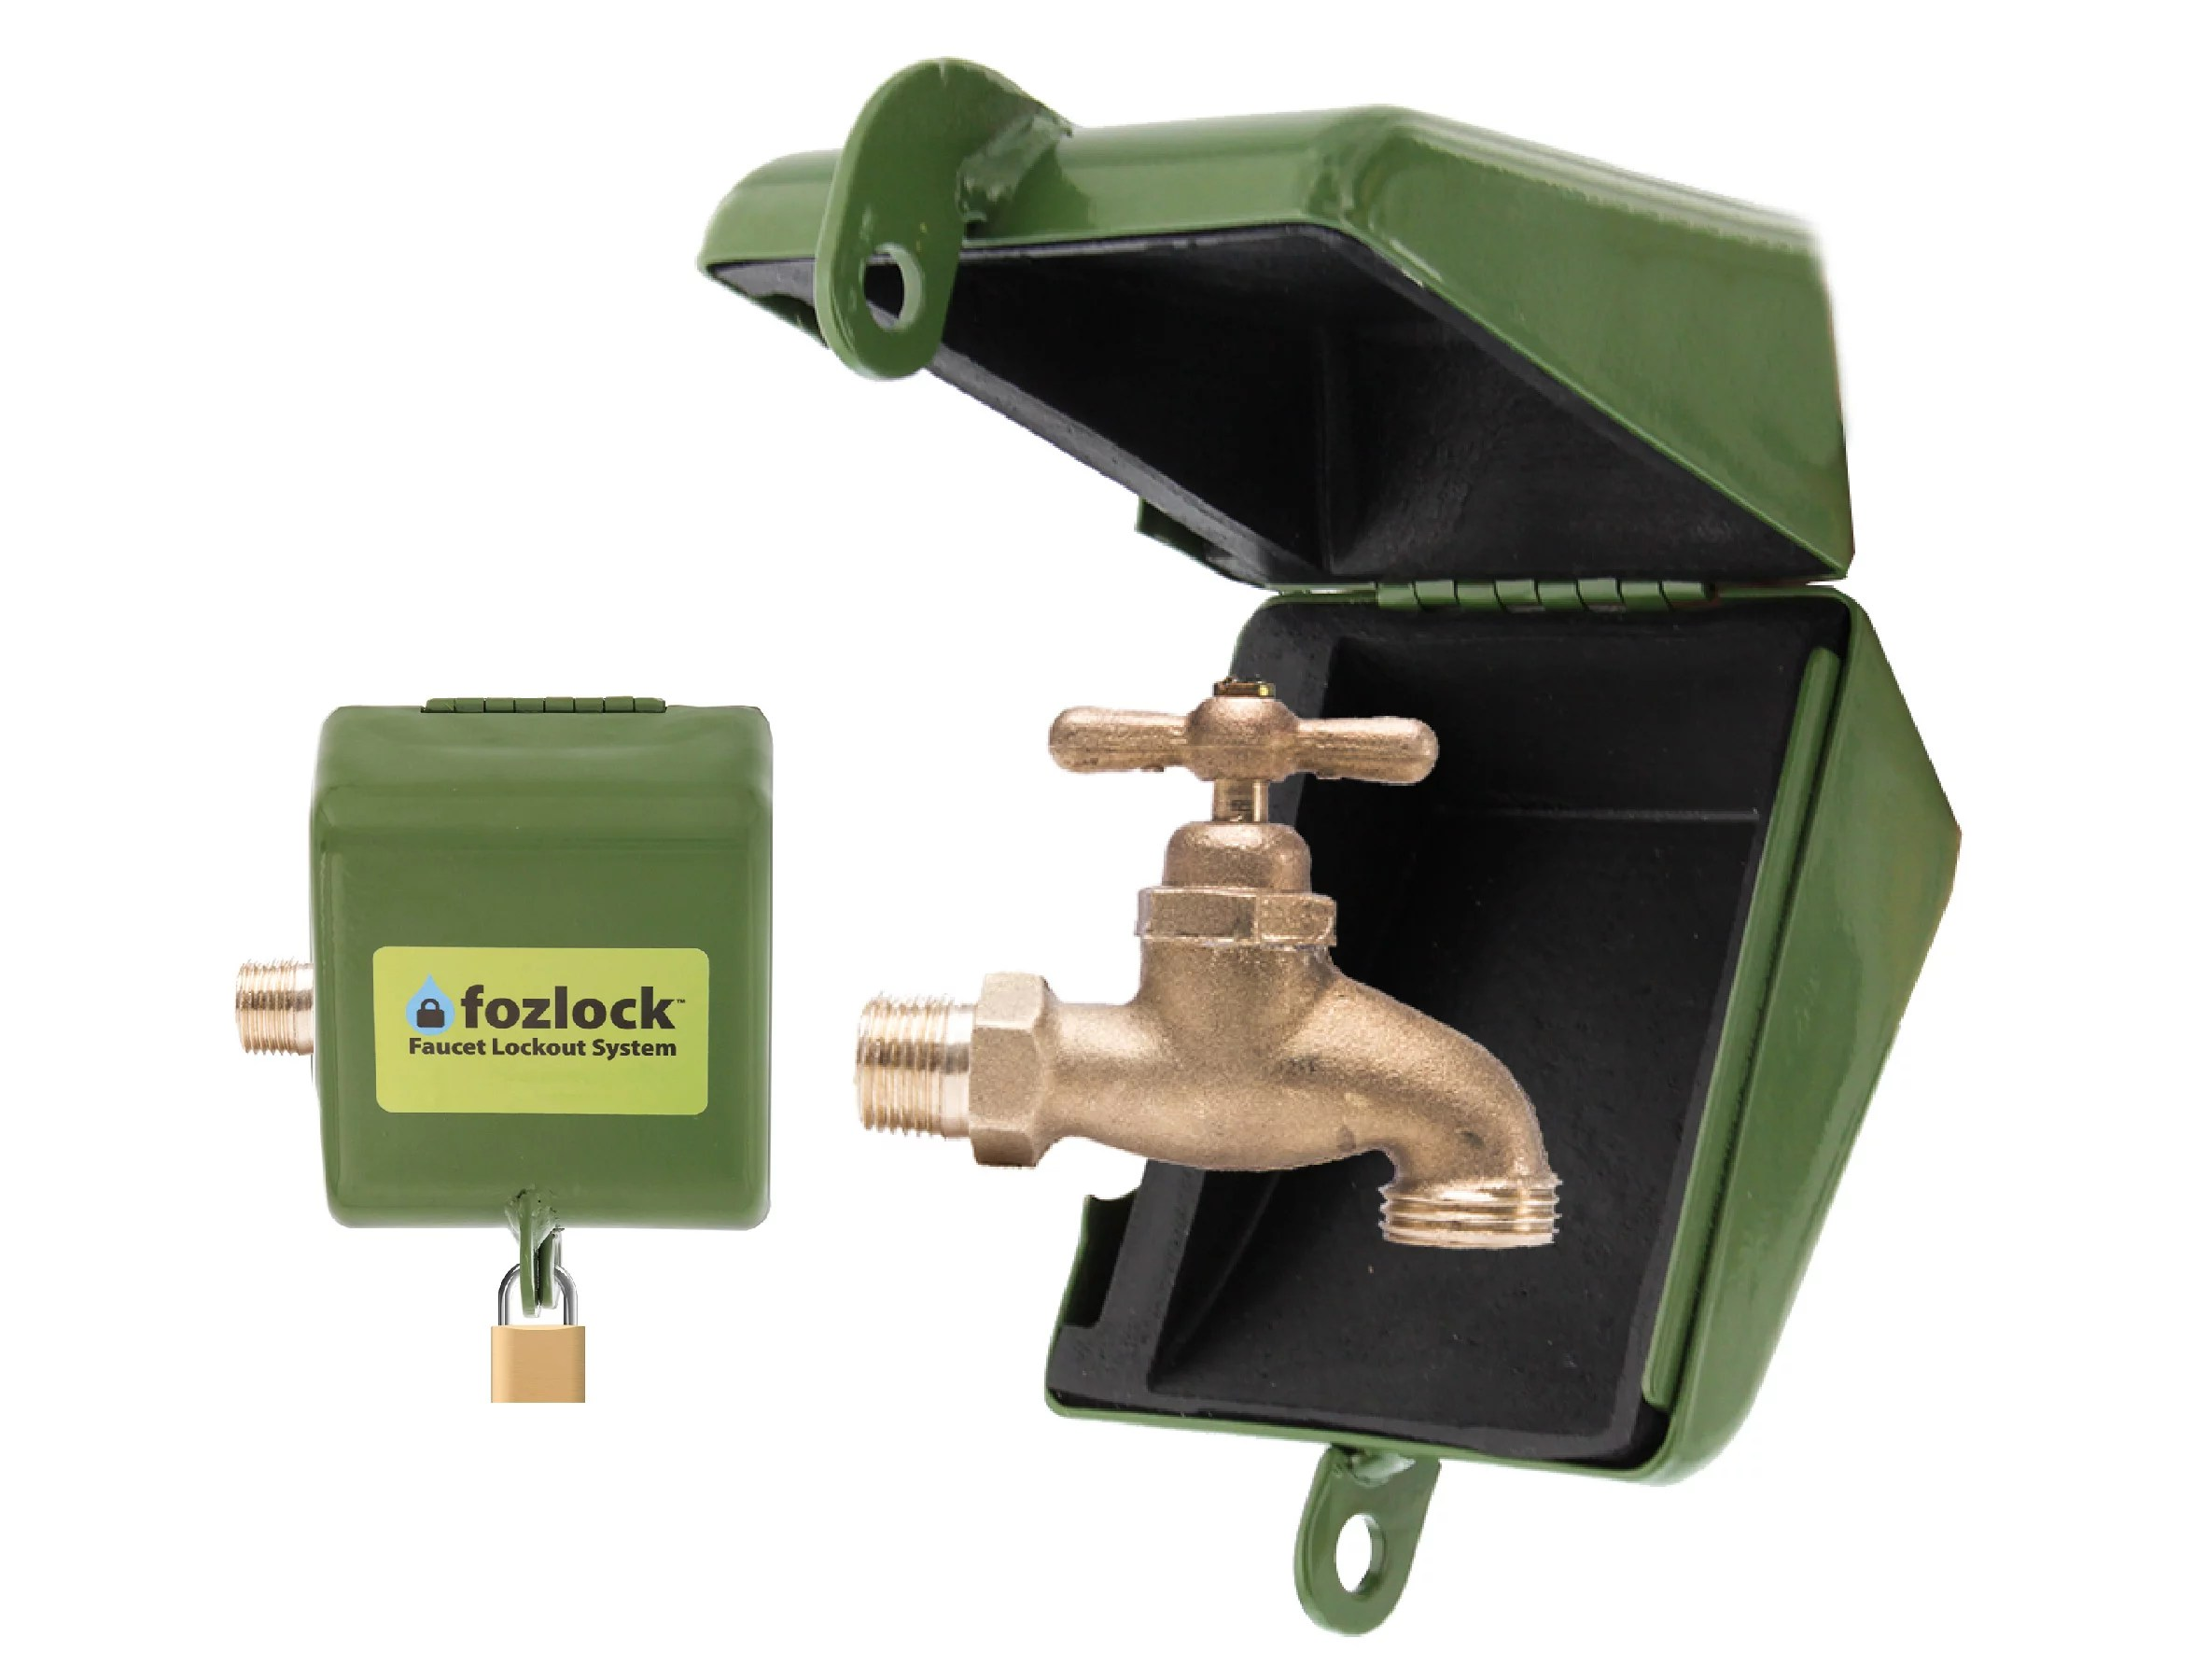 fozlock outdoor faucet lock system green insulated garden hose bibb lock and spigot lock with cover prevent water theft and stop unauthorized